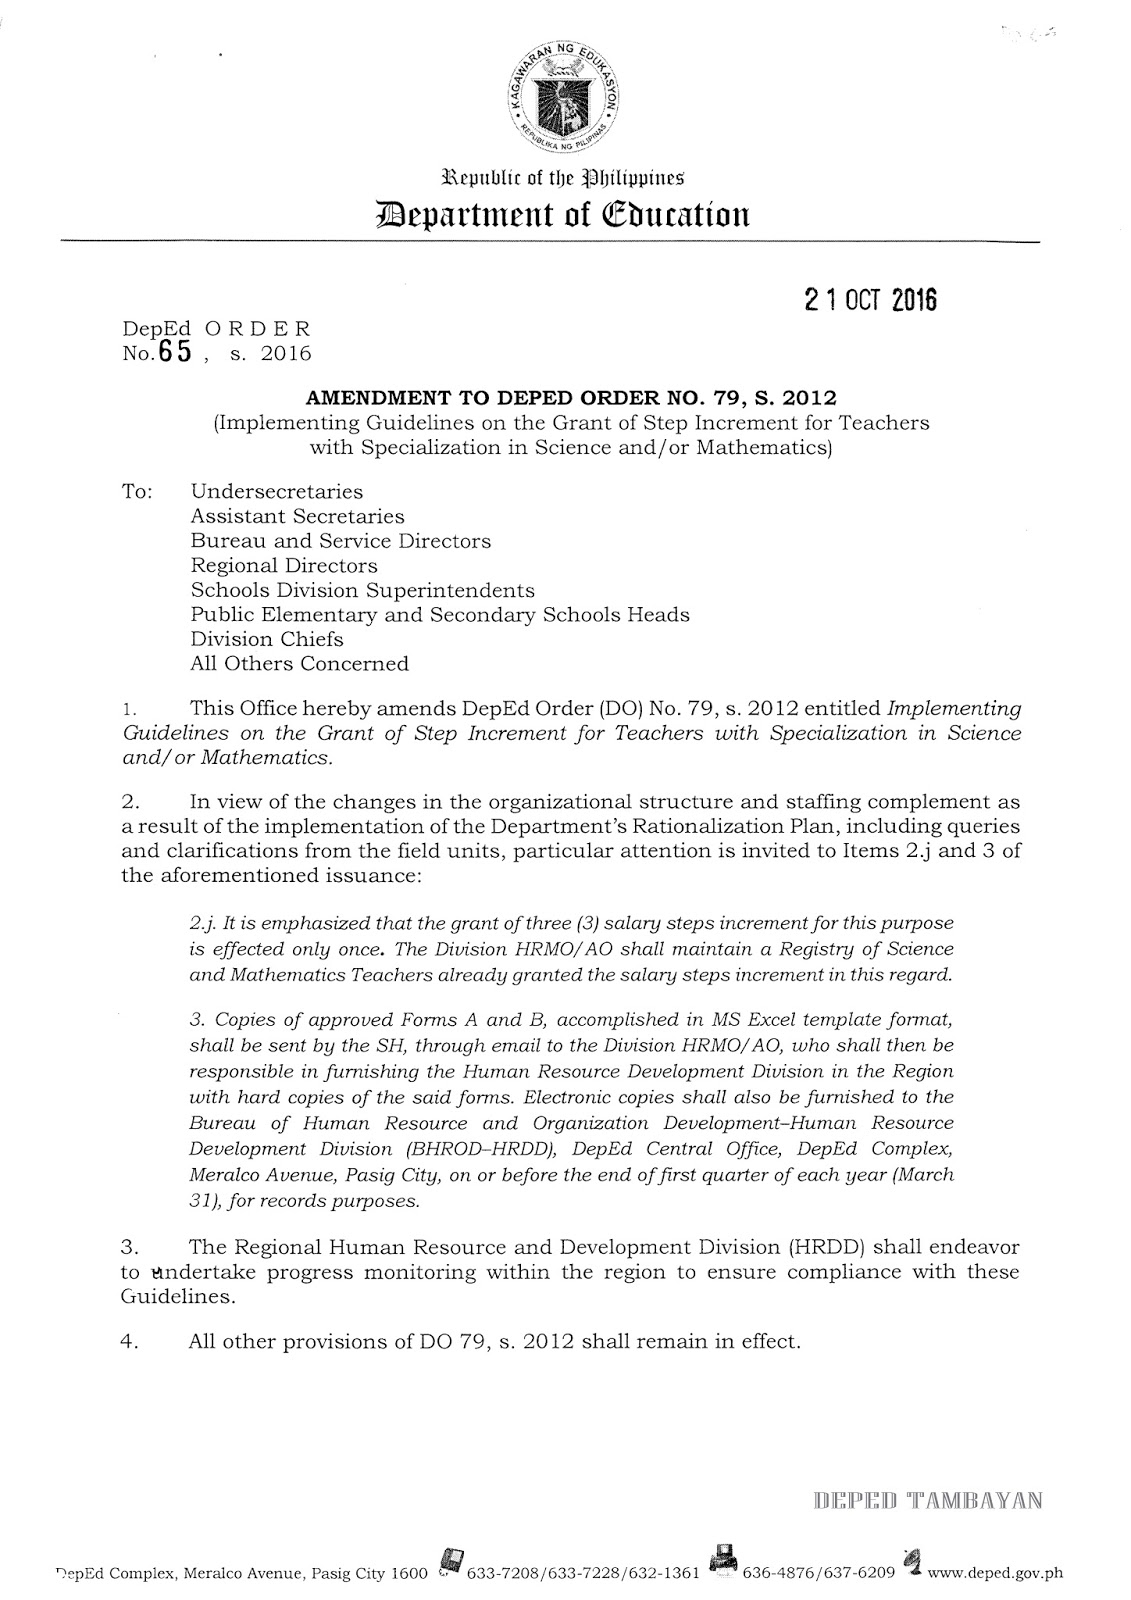 ammendment to implementing guidelines on the grant of salary ammendment to implementing guidelines on the grant of 3 salary steps increment for teachers specialization in science and or mathematics